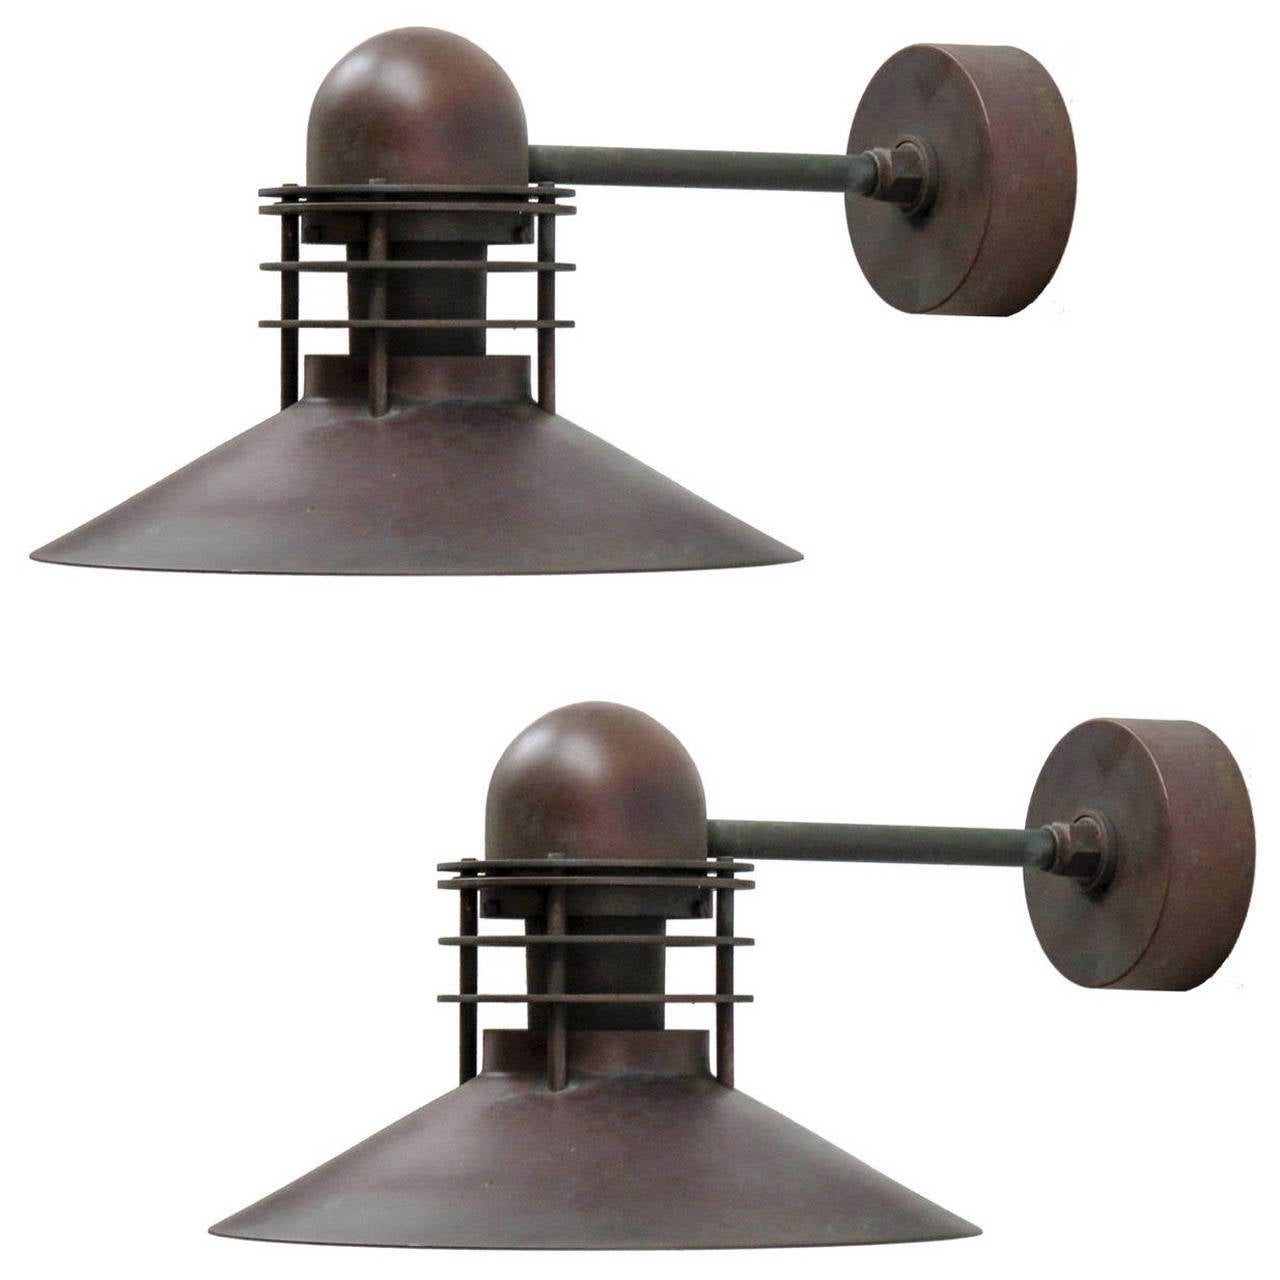 louis poulsen copper outdoor lamps at 1stdibs. Black Bedroom Furniture Sets. Home Design Ideas